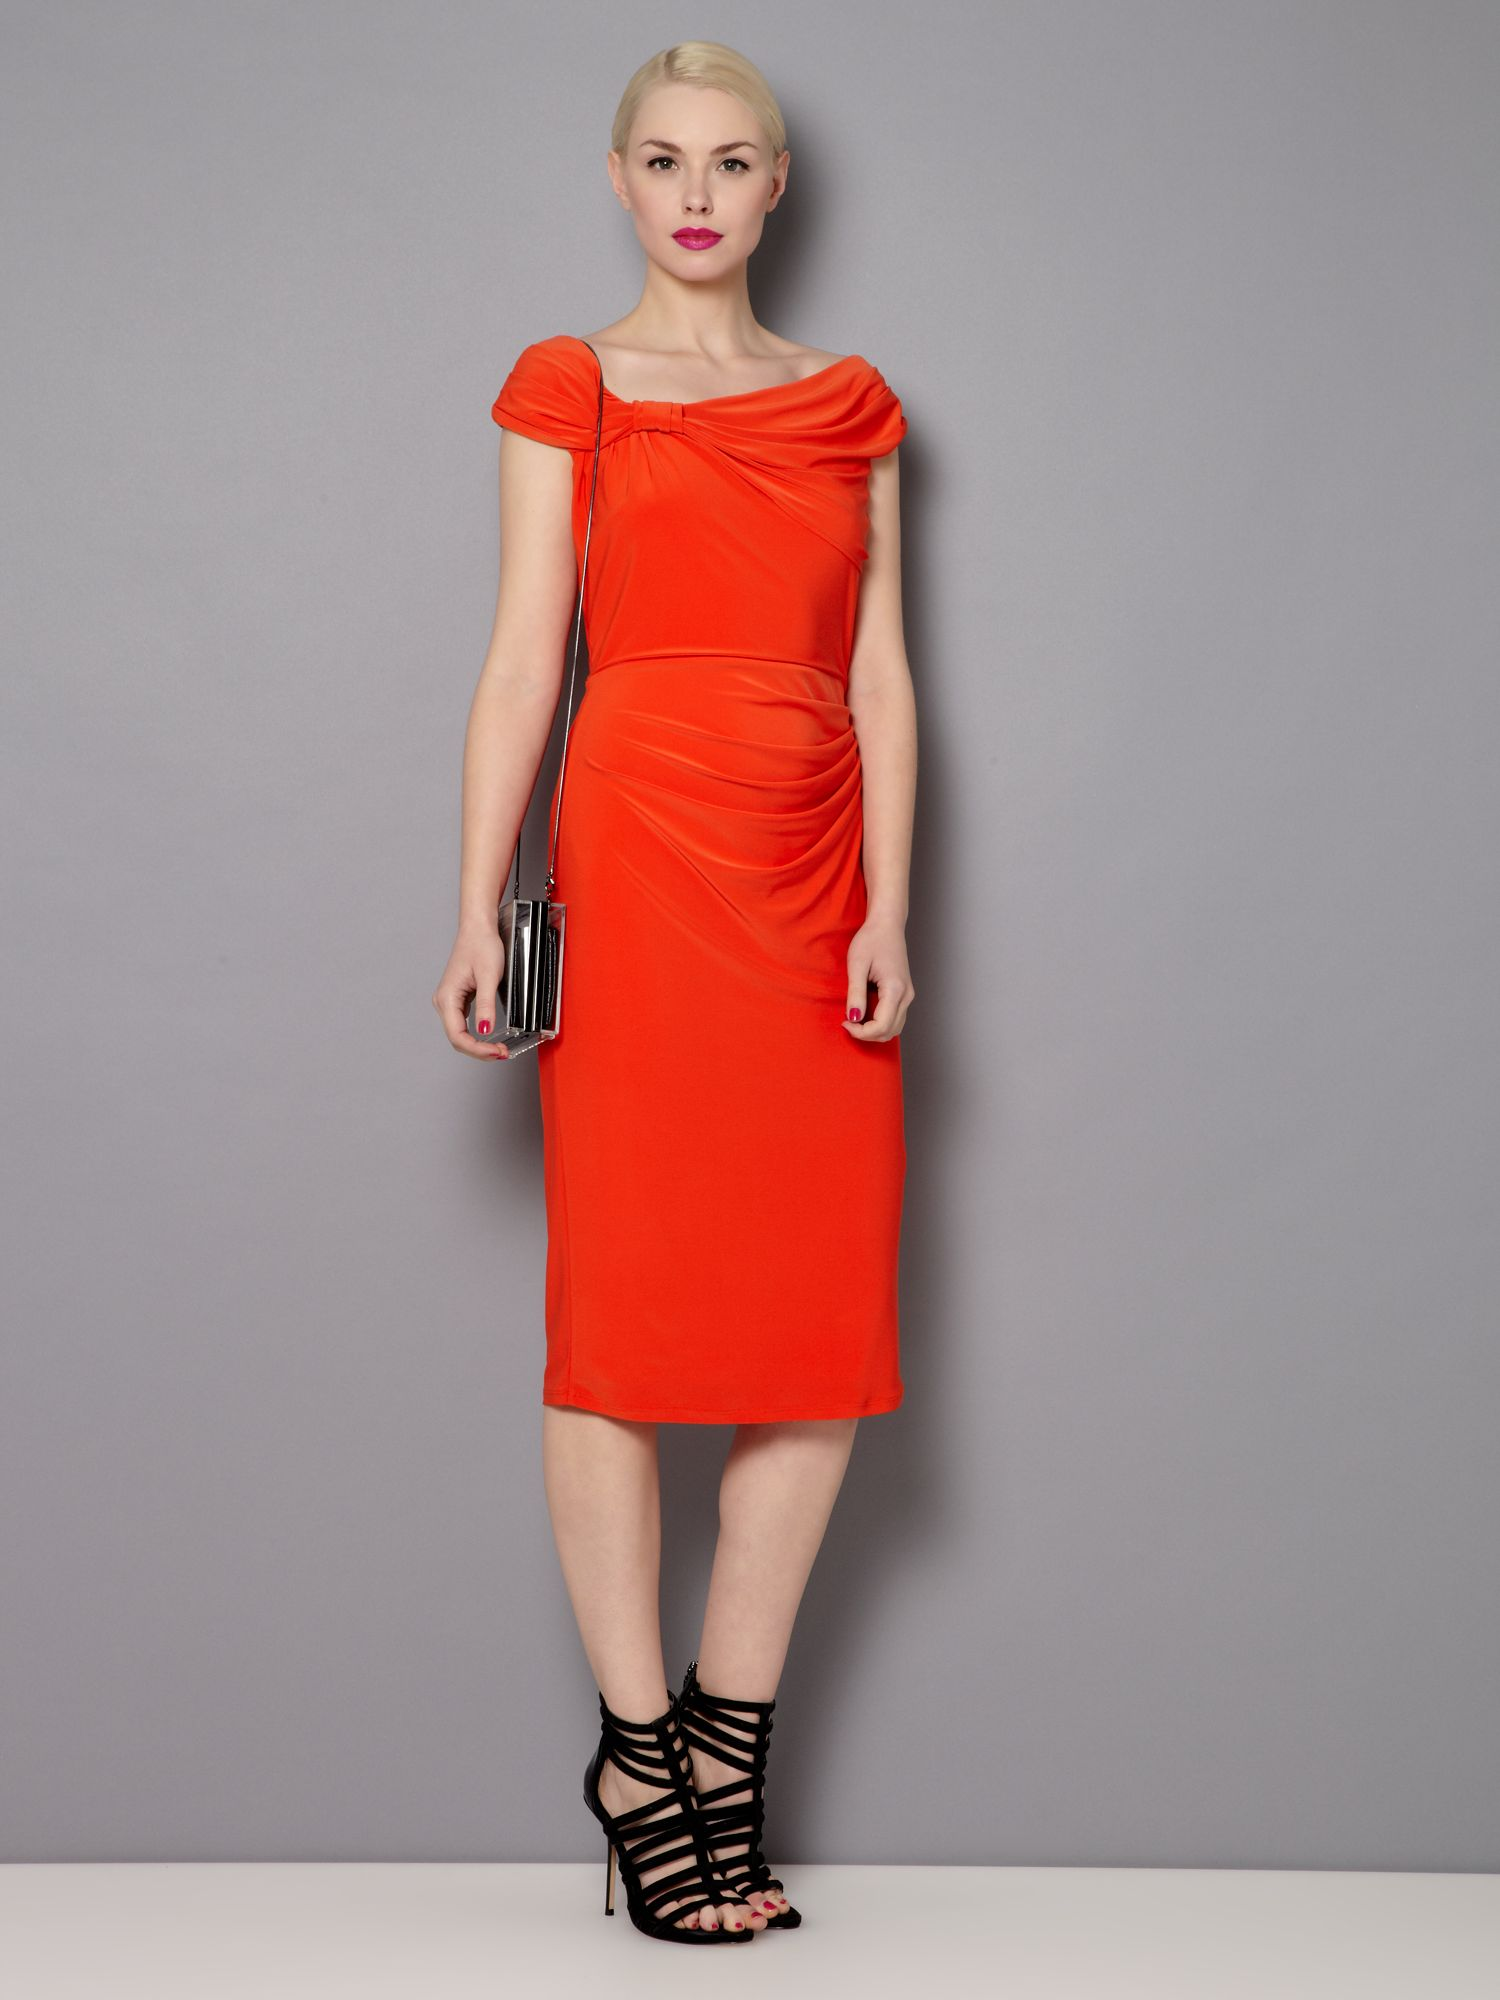 The gina asymmetric dress